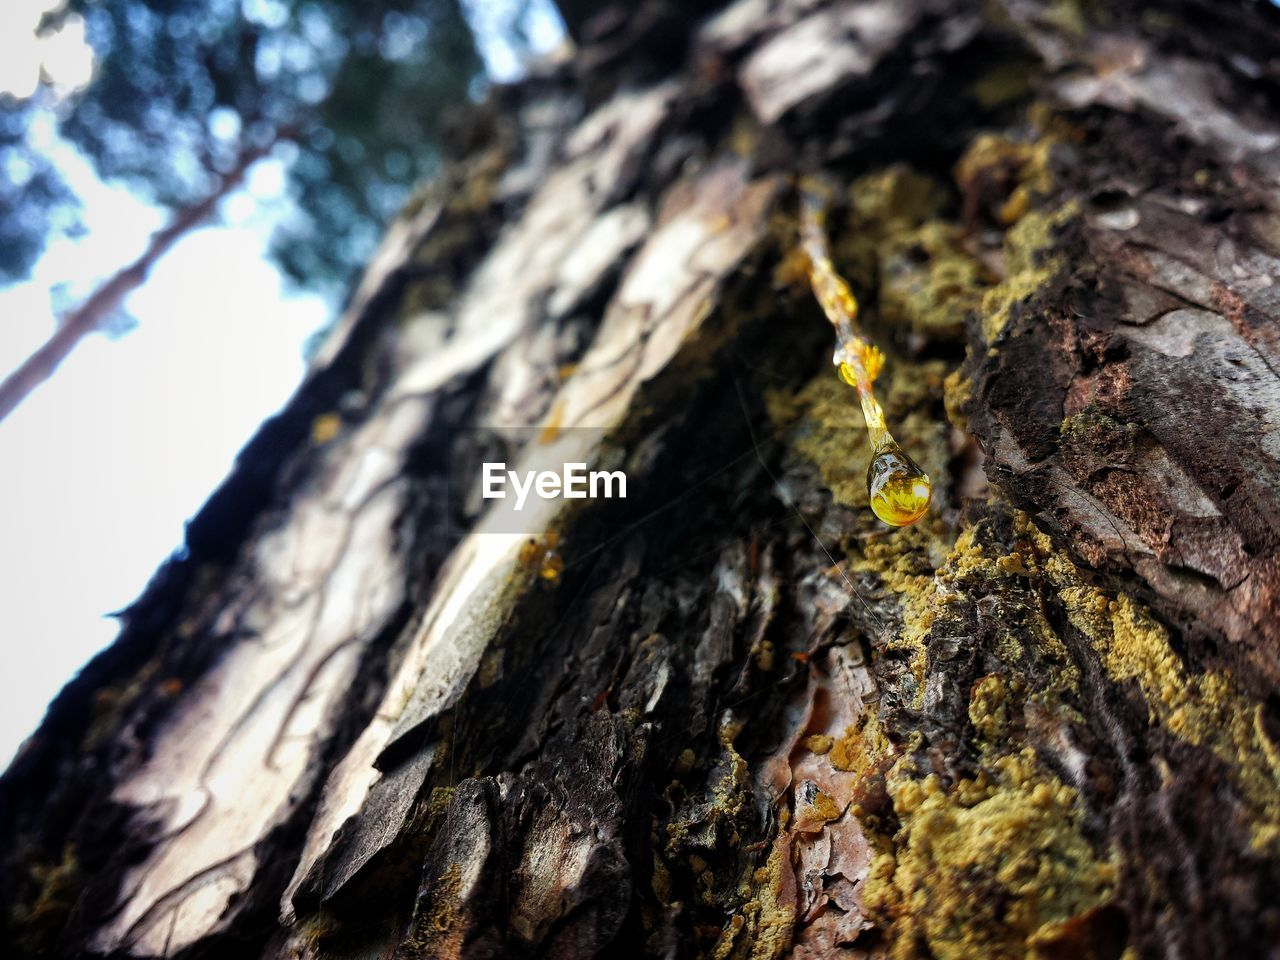 textured, no people, close-up, nature, tree trunk, day, outdoors, beauty in nature, tree, animal themes